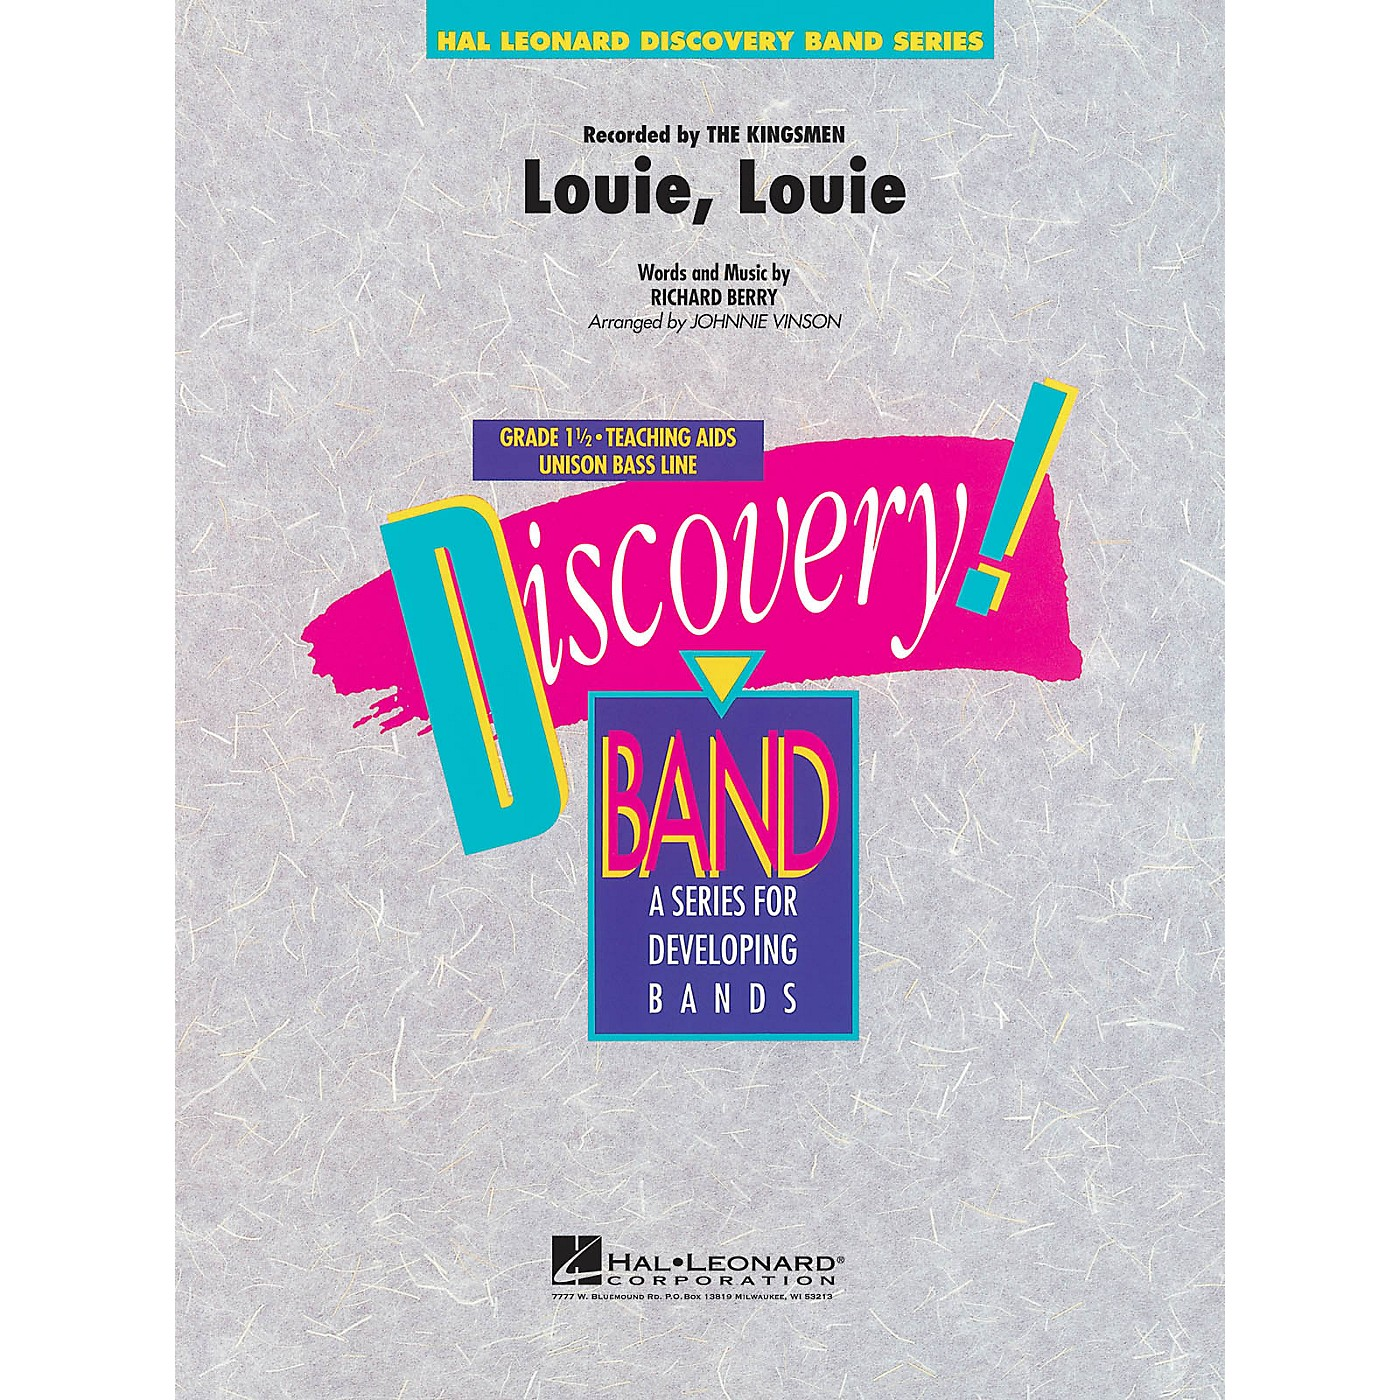 Hal Leonard Louie, Louie Concert Band Level 1.5 by The Kingsman Arranged by Johnnie Vinson thumbnail